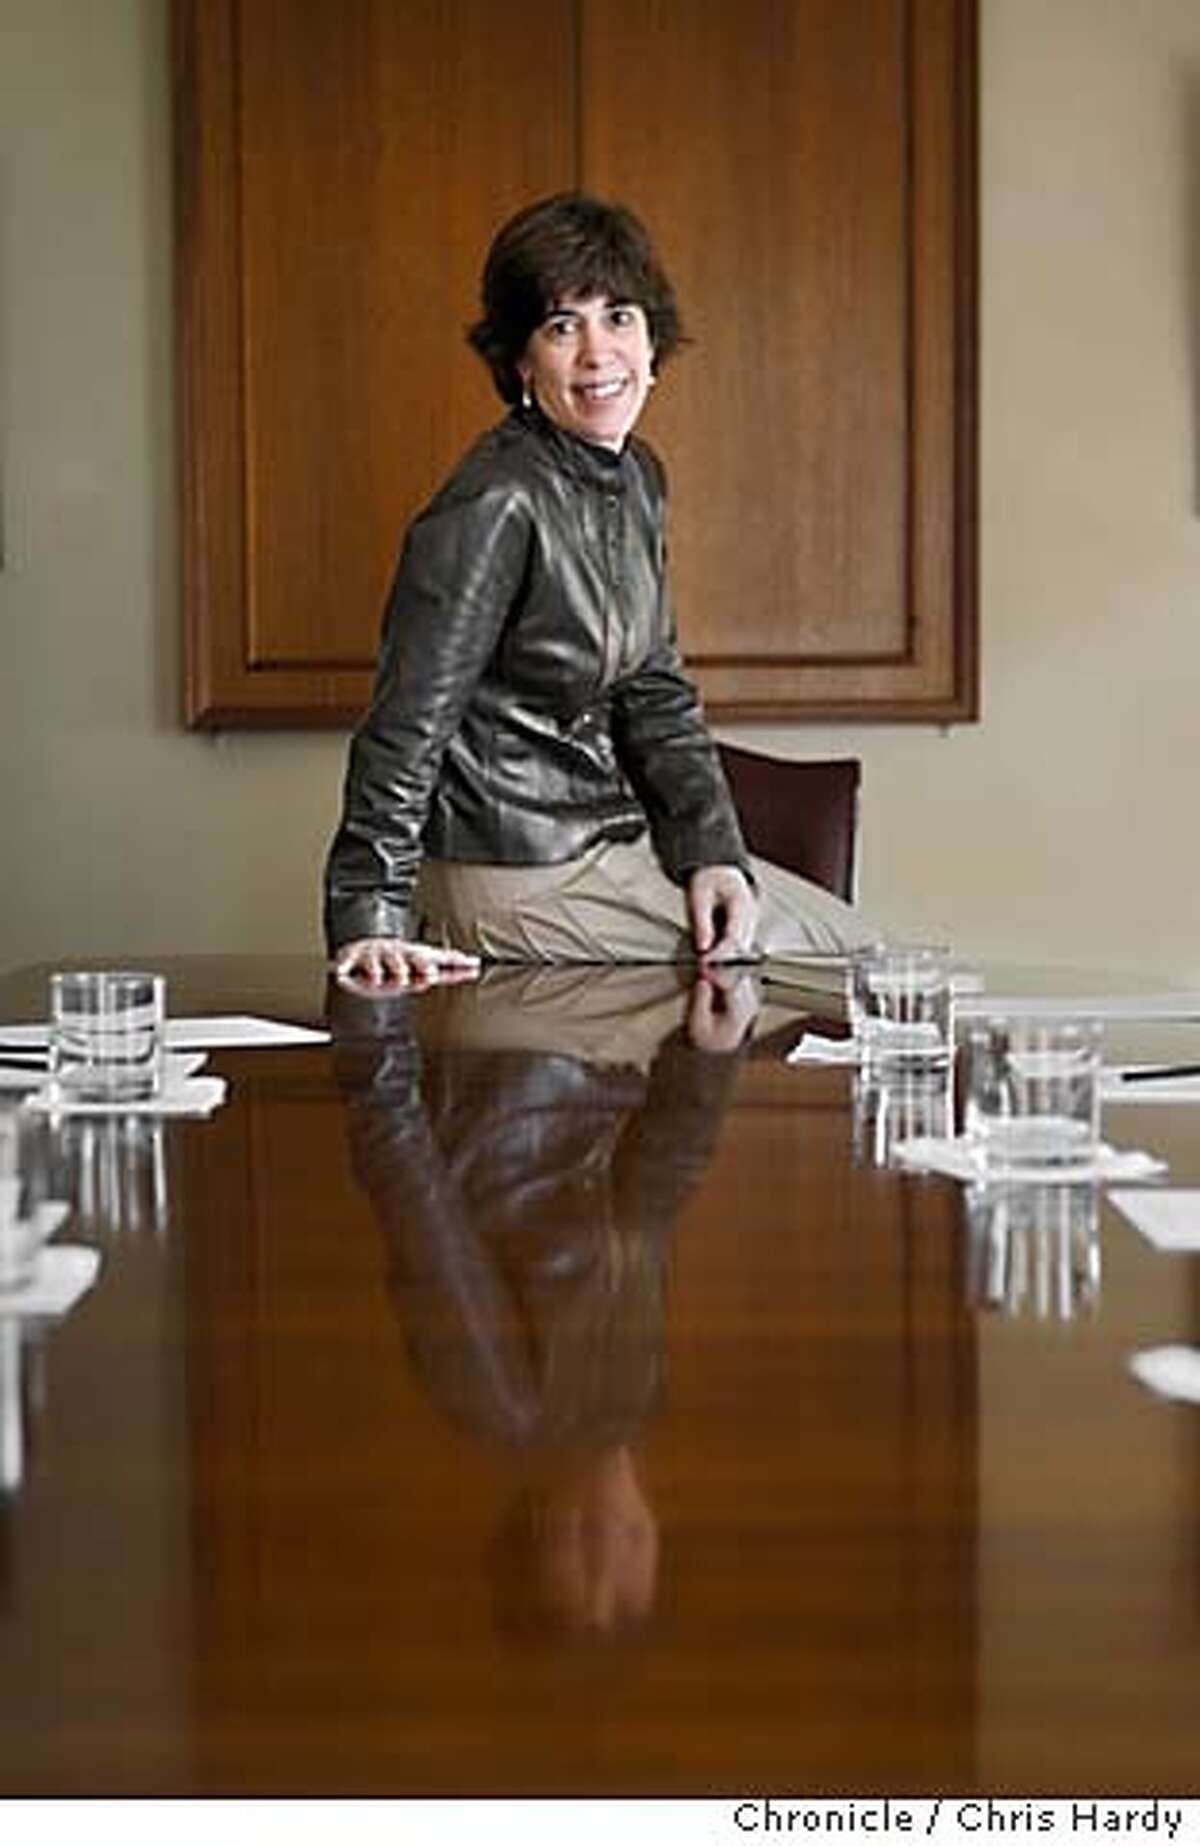 """fivequestions20_ch_029.jpg Robin Wolaner and her new book, """"Naked in the Boardroom."""" The book is tips for women trying to make a successful career in the corporate world. in San Francisco 3/7/05 Chris Hardy / San Francisco Chronicle"""